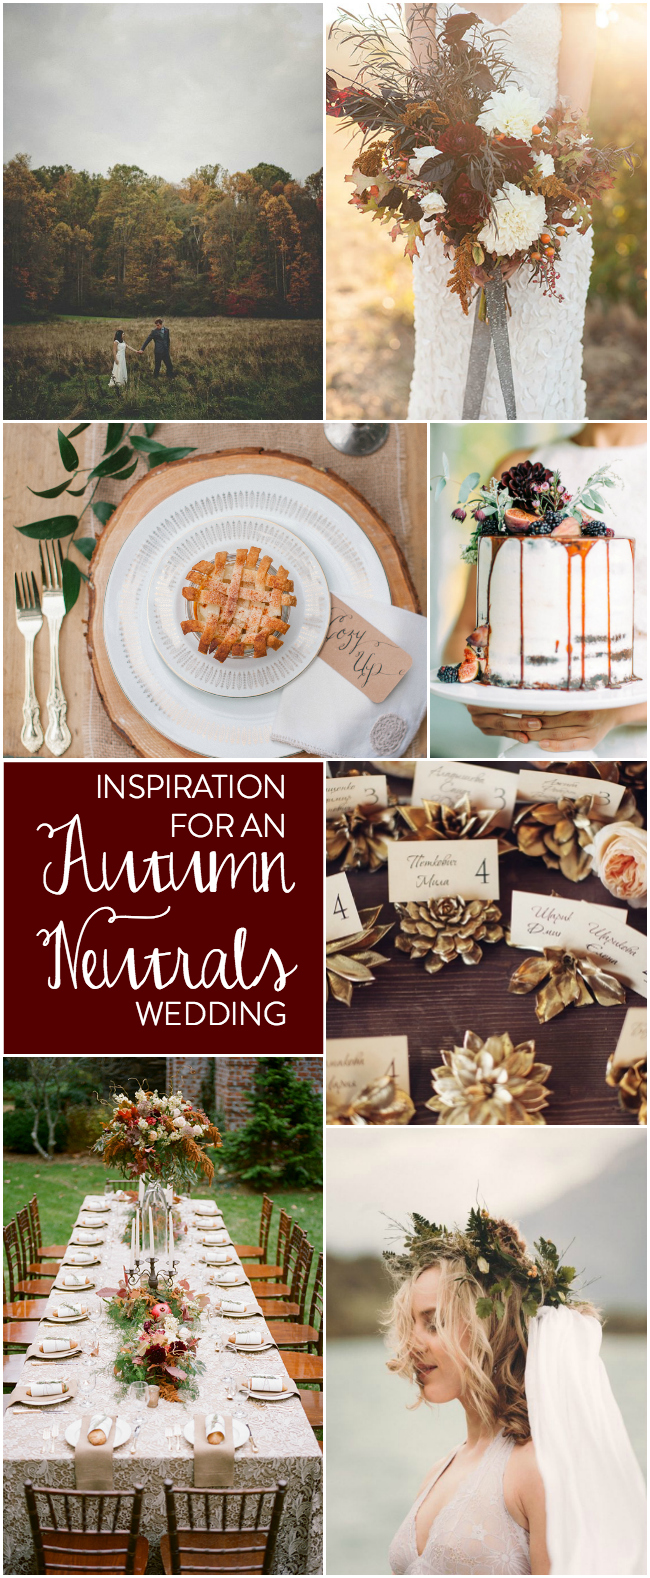 BESPOKEDECOR Inpsiration for an autumn neutrals wedding